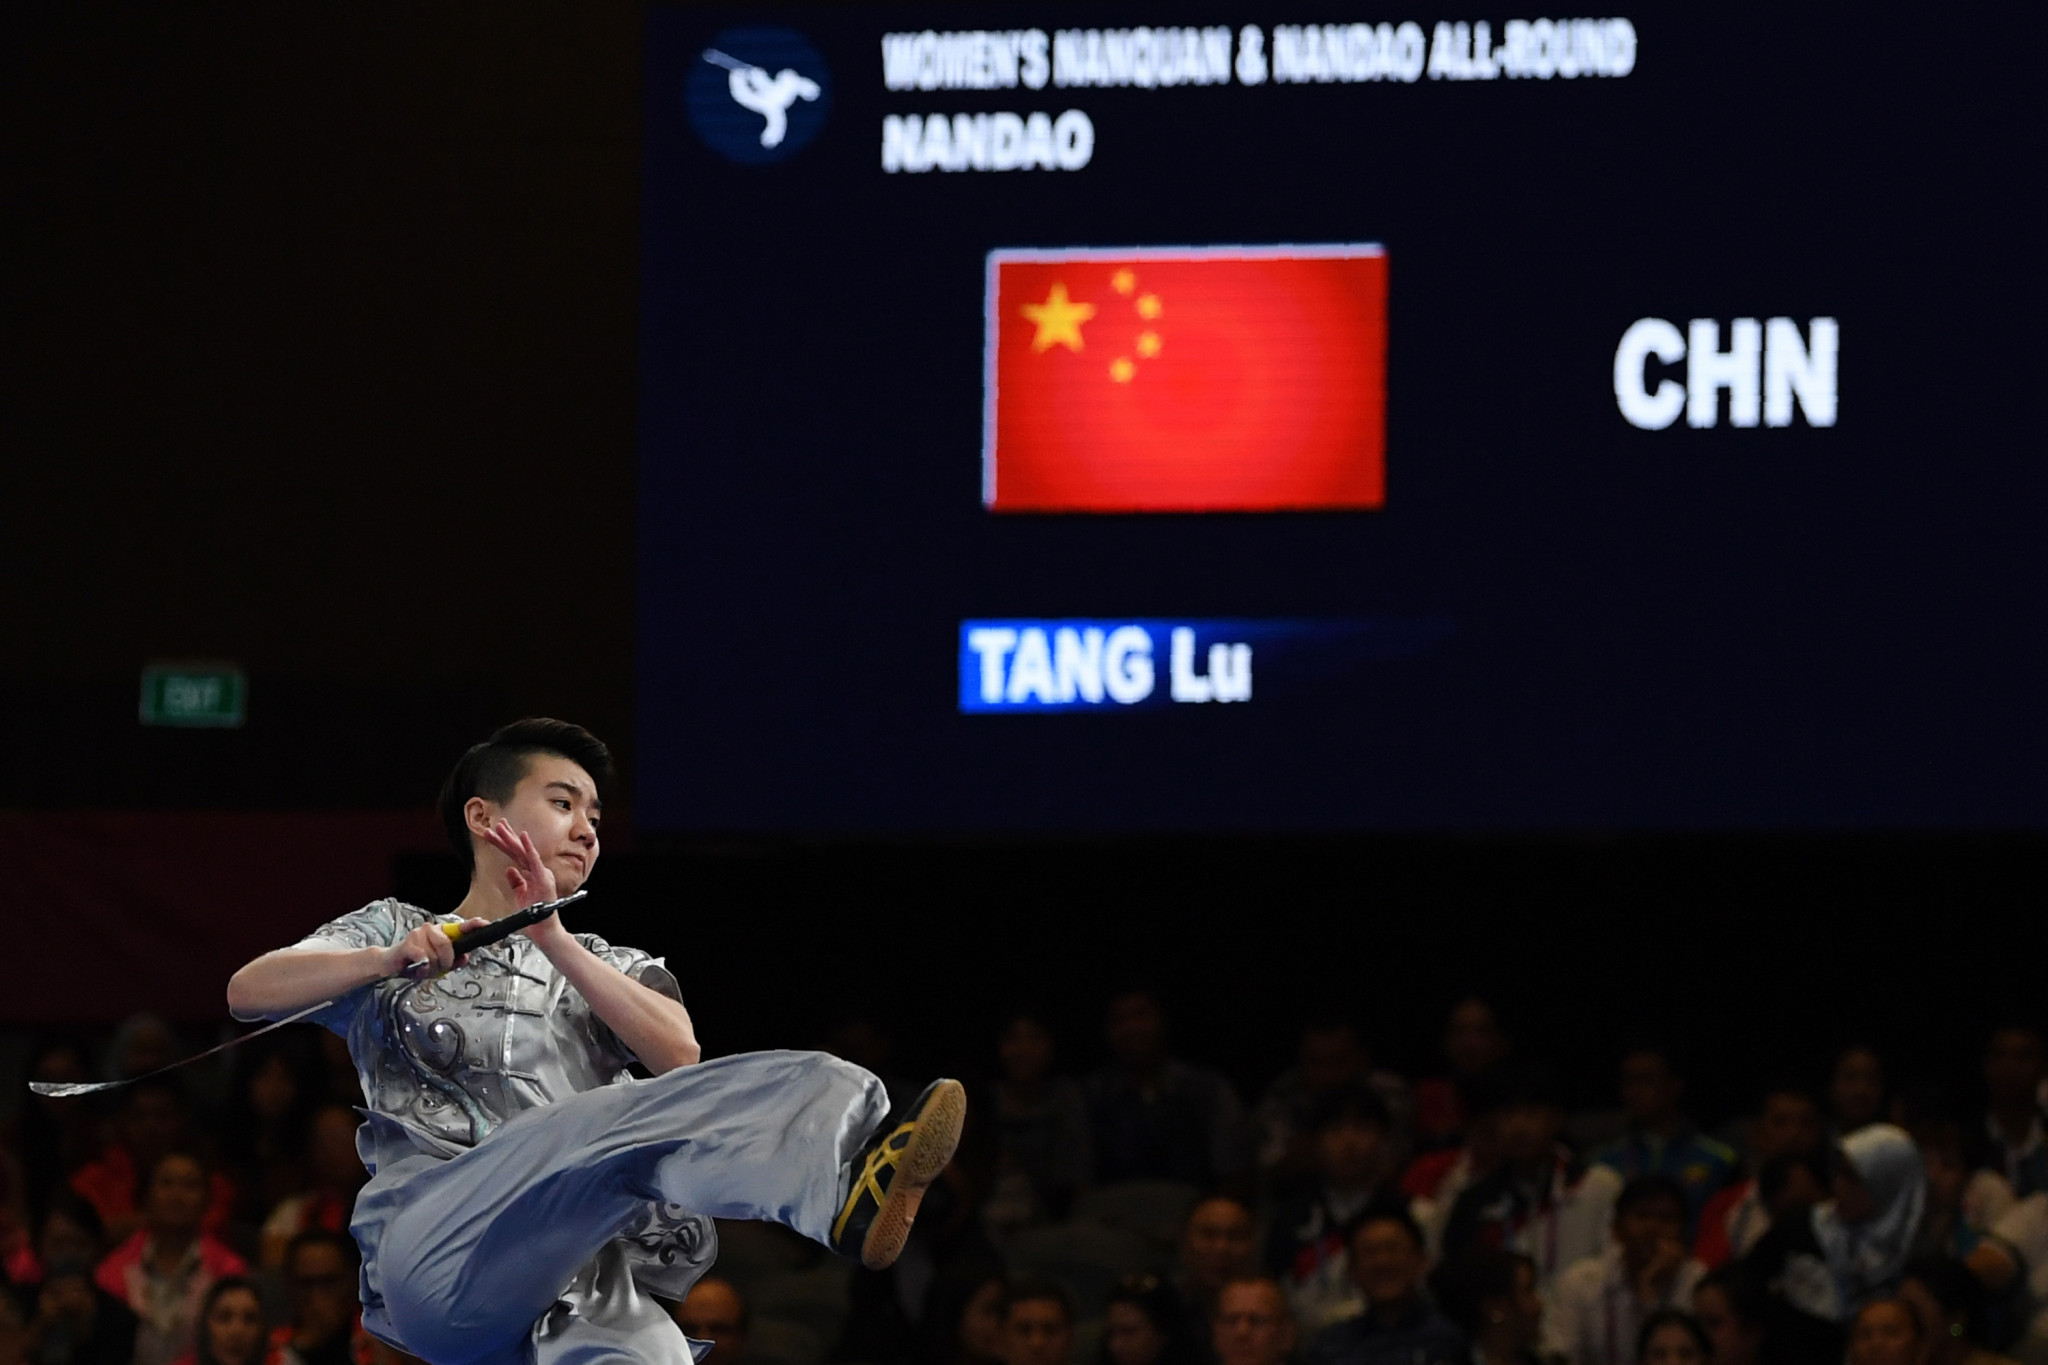 China's Lu Tang wrapped up victory in the women's nanquan and nandao all-around wushu event ©Getty Images